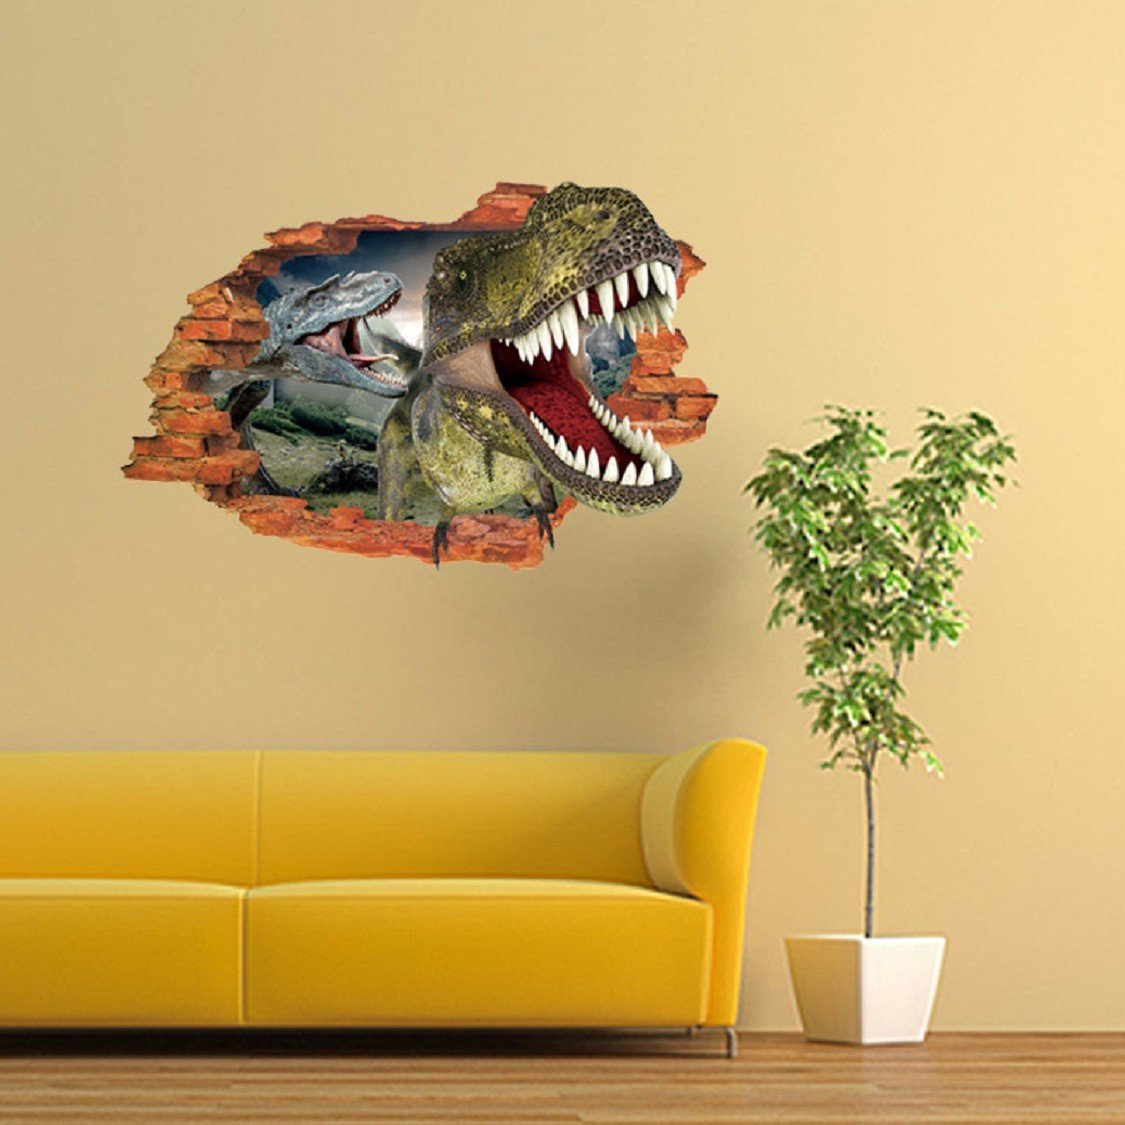 3D Dinosaur Wall Sticker,Ikevan 50x70cm Dinosaur Waterproof Environmental Protection PVC Sticker Stereoscopic Wall Decals Sticker Home Wall Decor Gifts Colorful